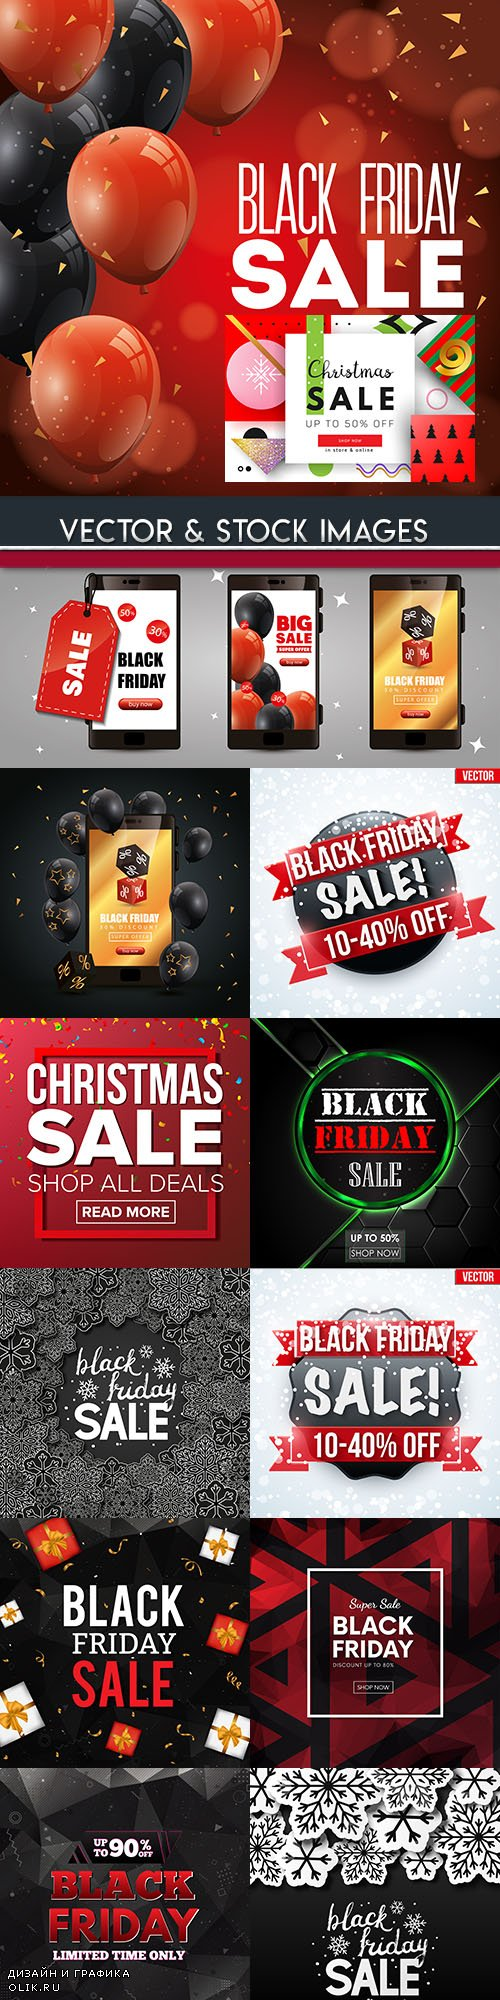 Black Friday Christmas sale special day illustration 22